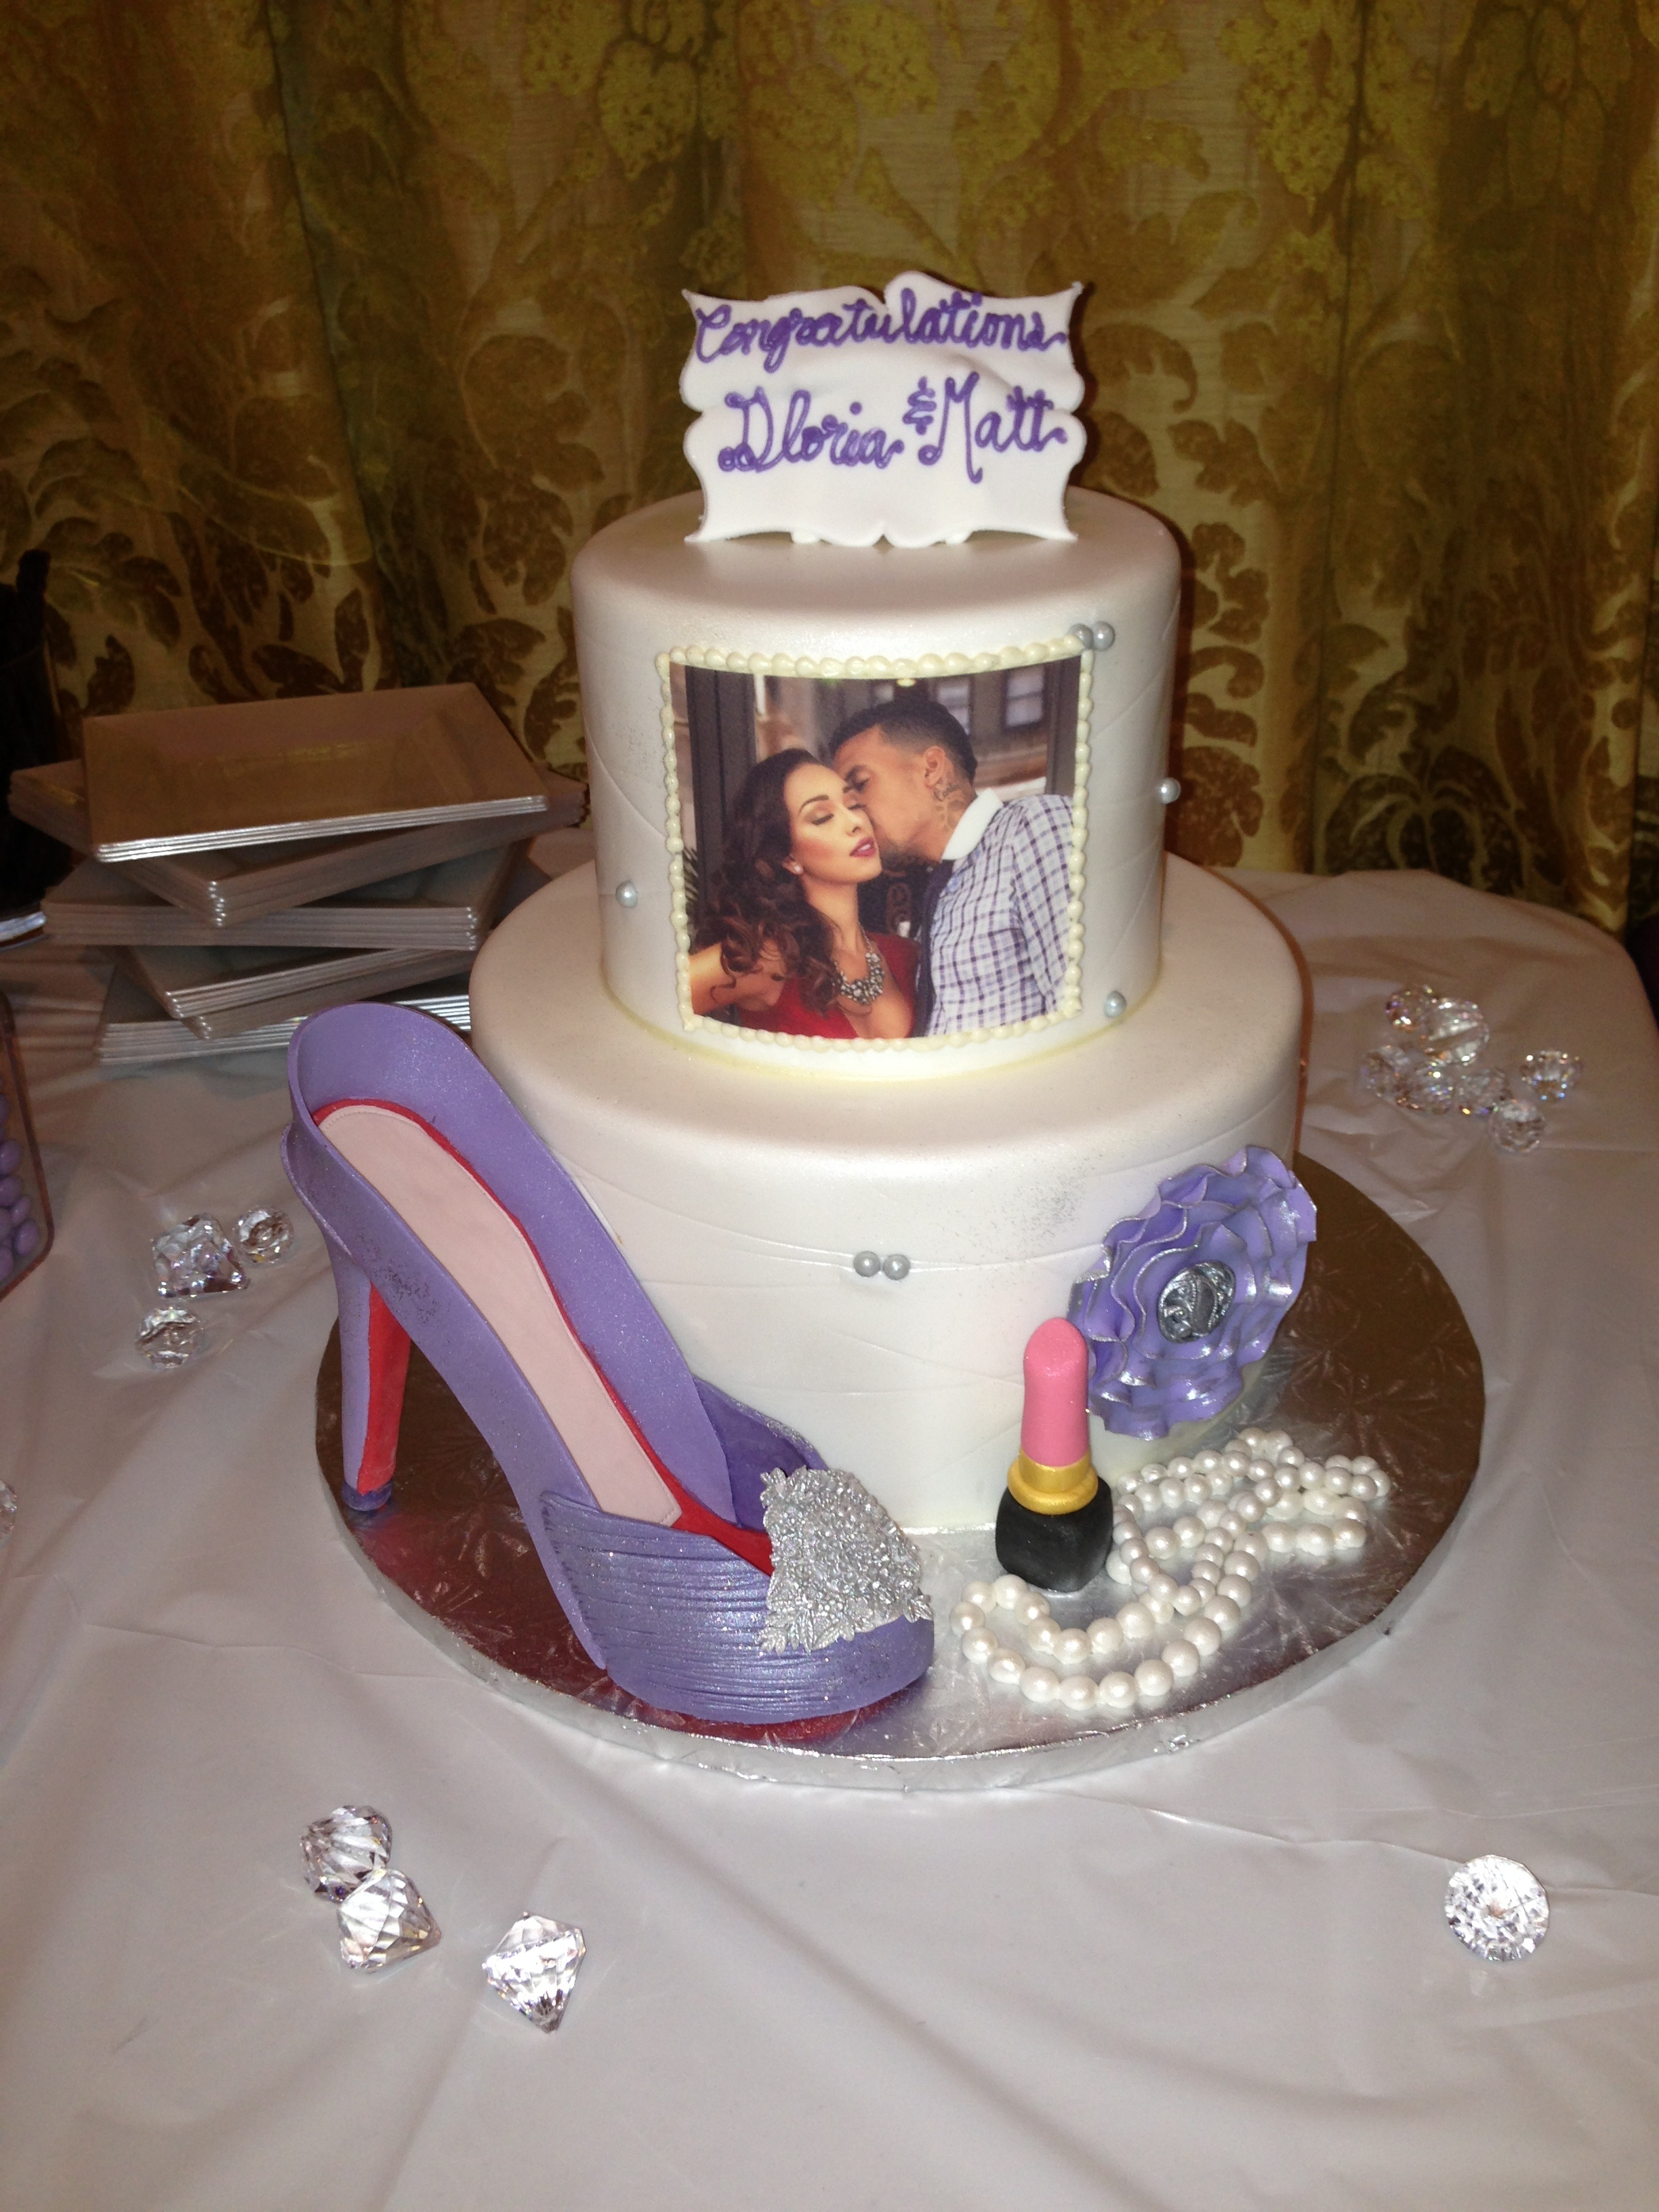 Its Never Too Late For A Bridal Shower Chris Pauls Wife Jada Paul